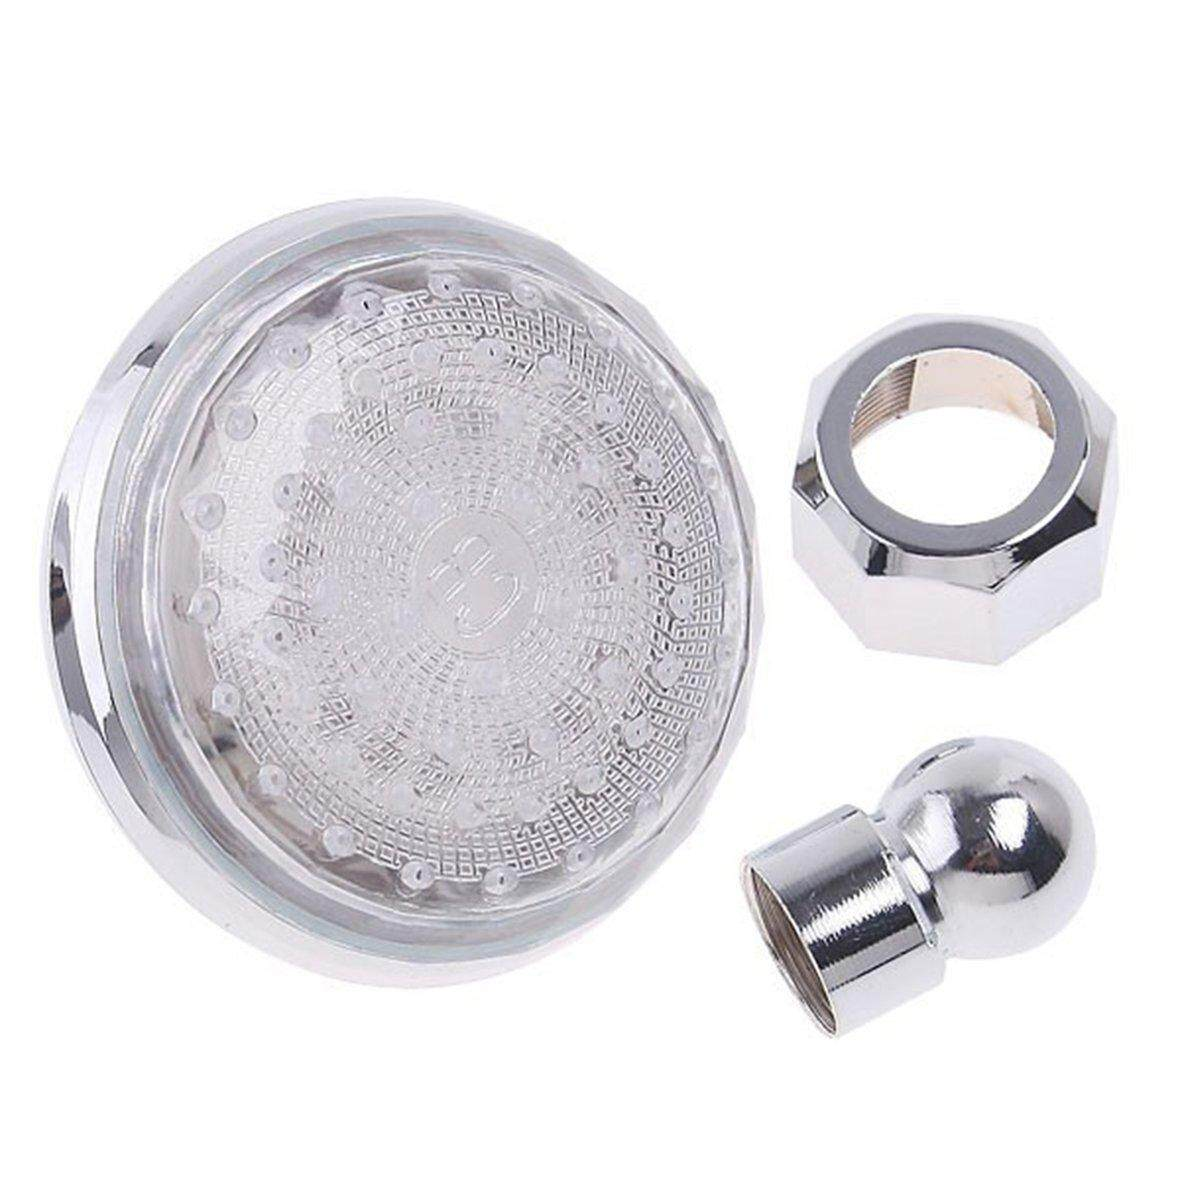 Hot Sellers Led Small Top Spray Flashing Round With Pattern Small Top Spray Ld8010-A2